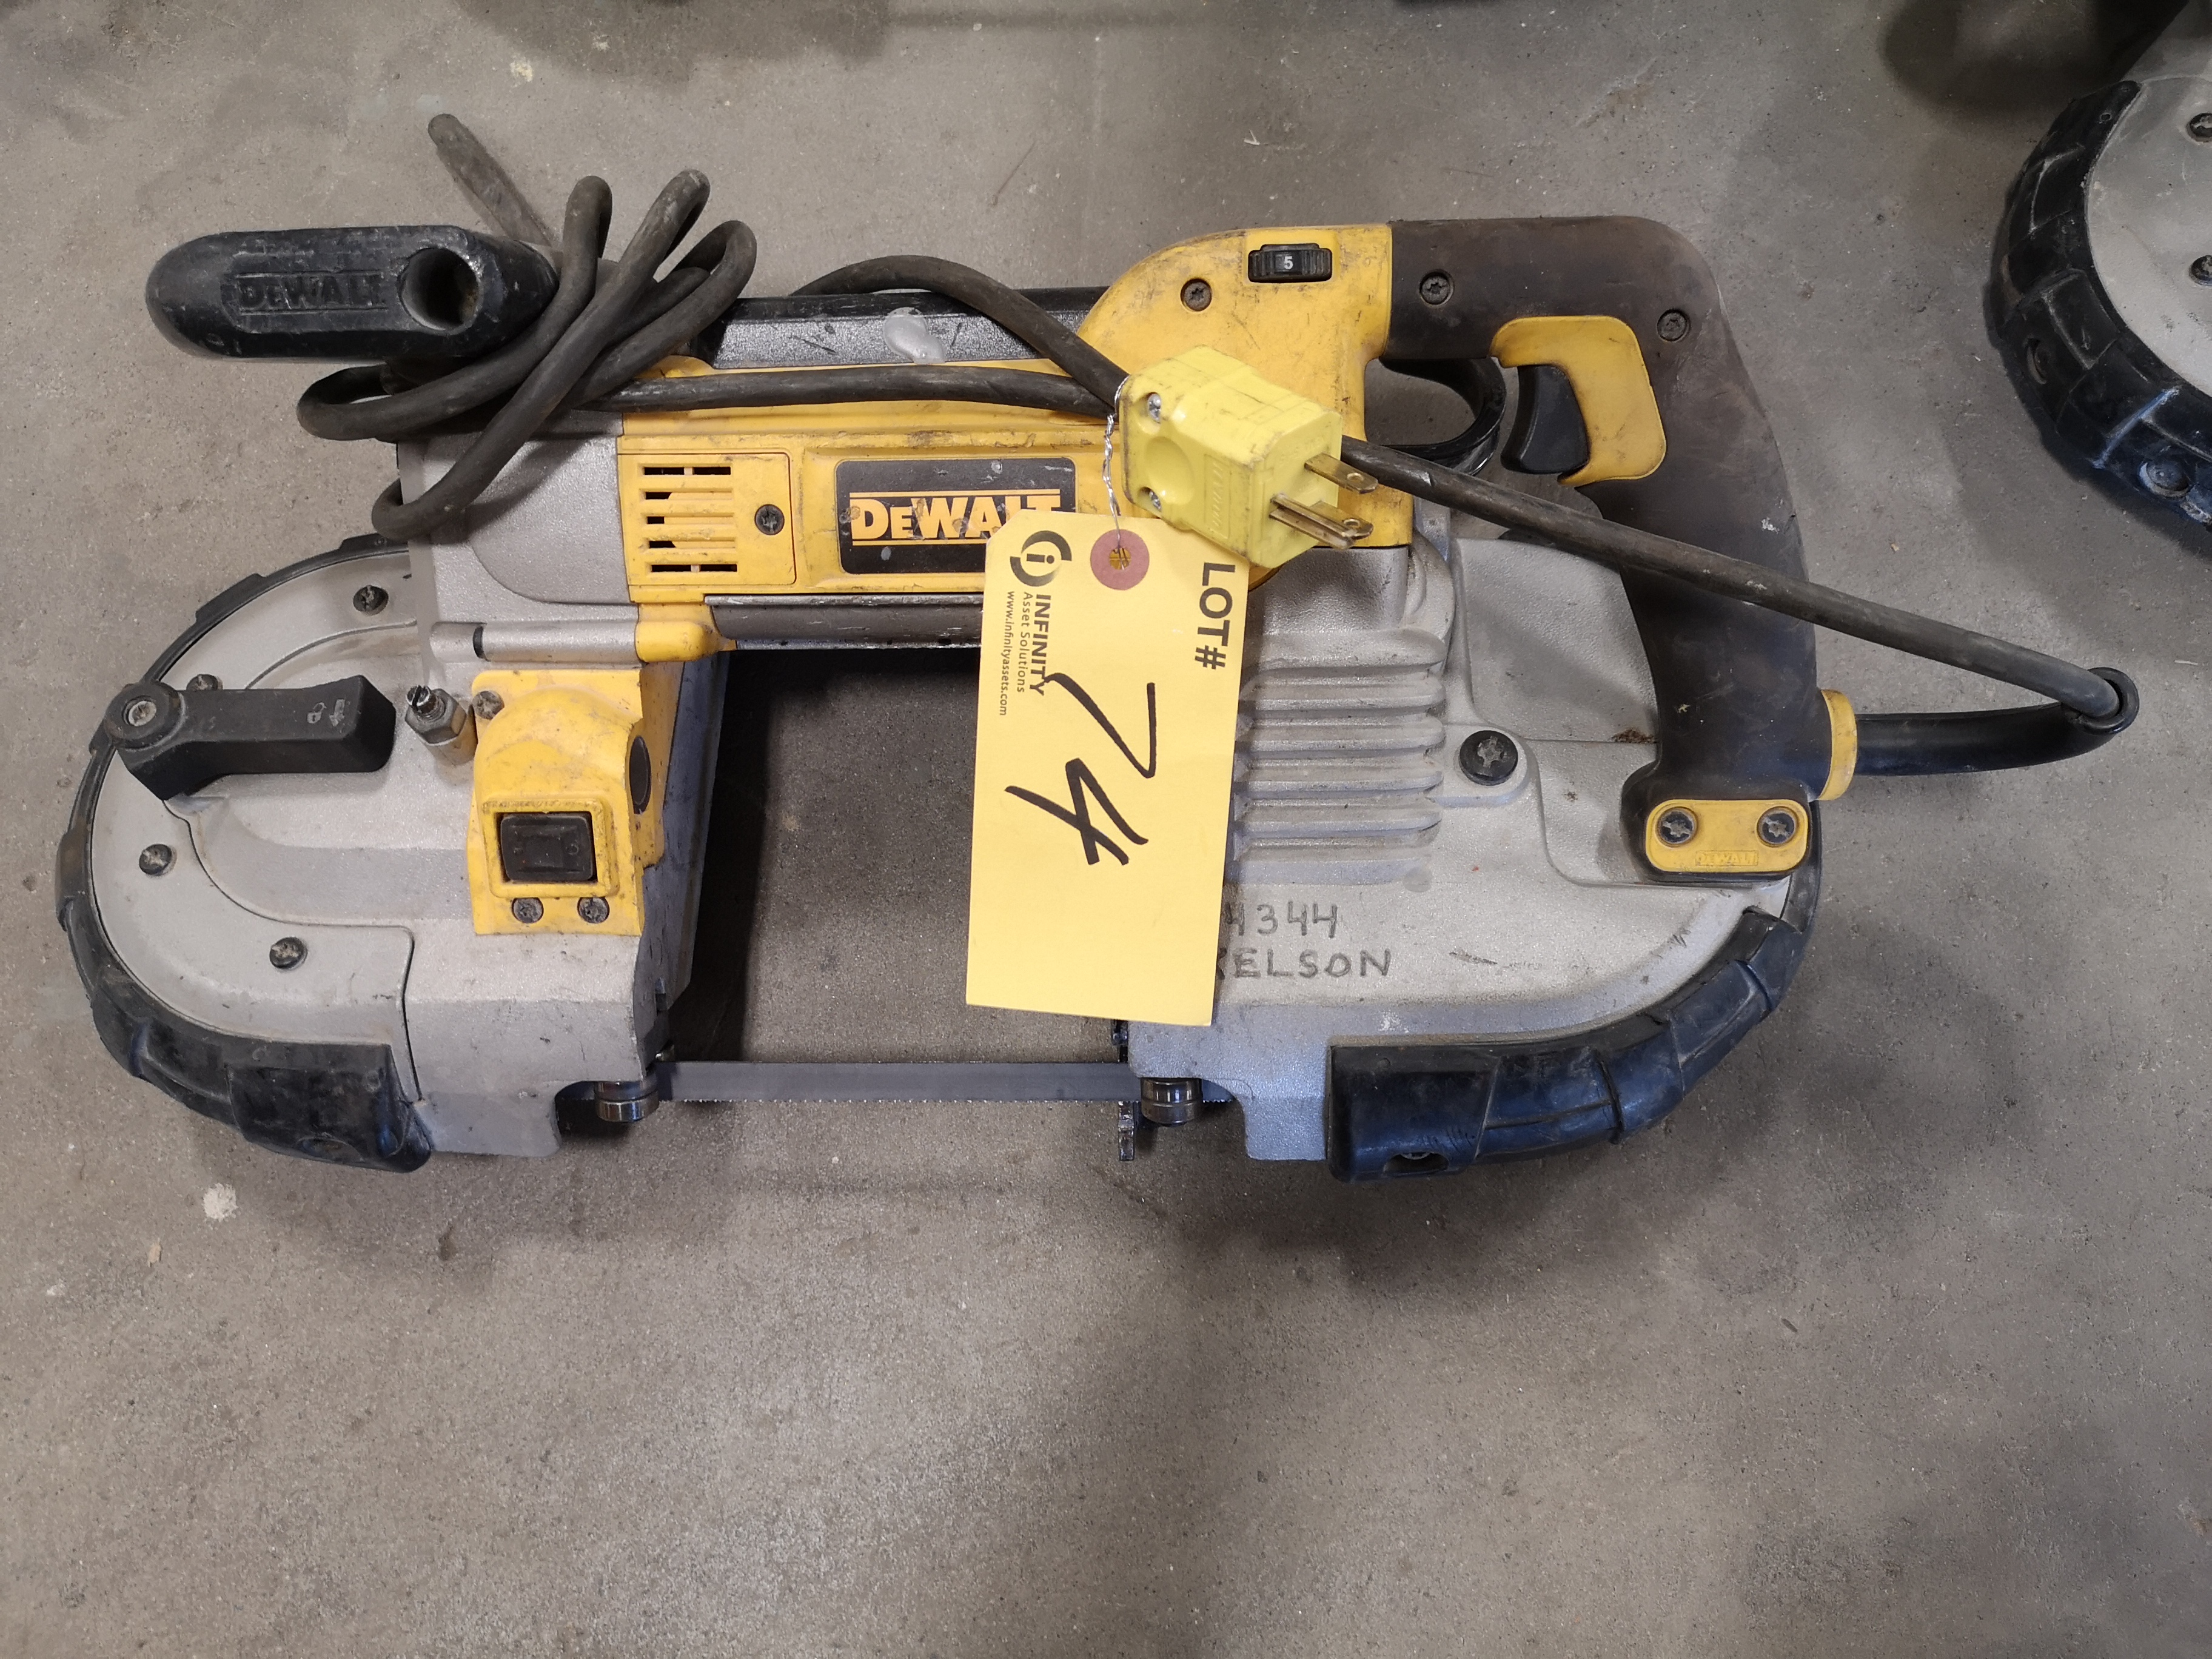 "DEWALT DWM120 5""(127MM) DEEP CUT VARIABLE SPEED BANDSAW (LOCATED AT 1135 STELLAR DRIVE, NEWMARKET,"